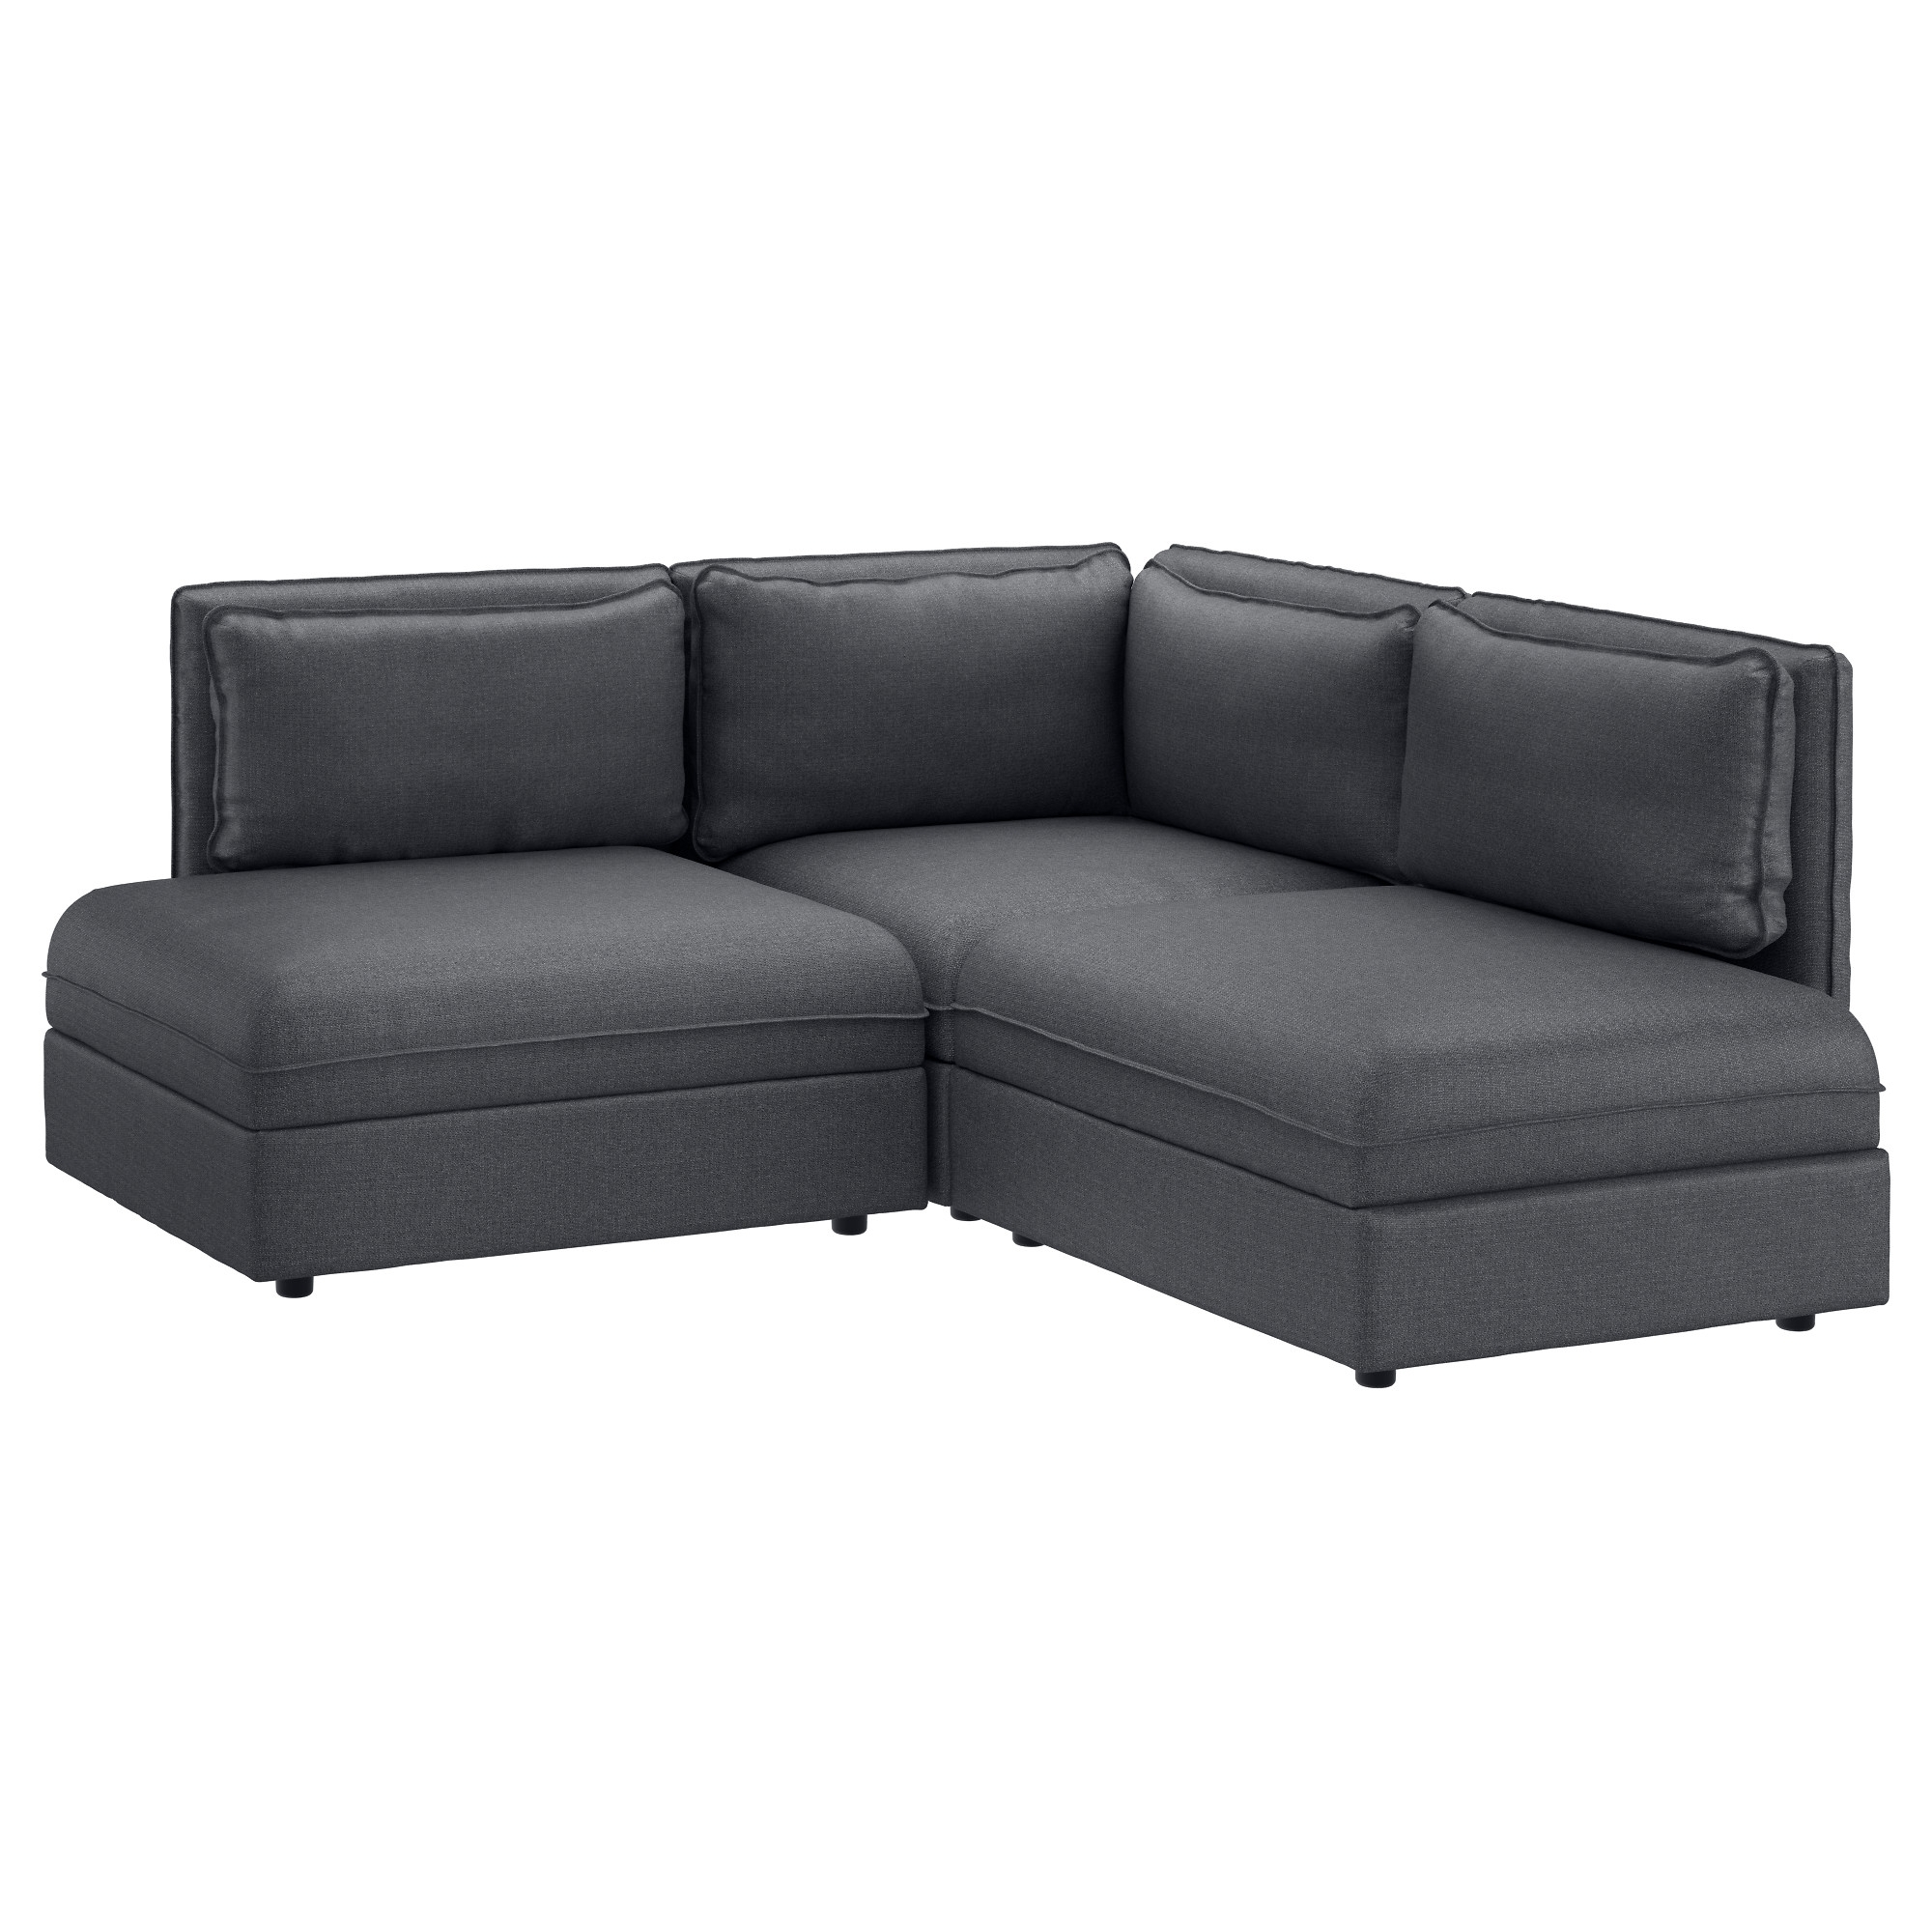 Well Known Ikea Corner Sofas With Storage For Vallentuna 3 Seat Corner Sofa Hillared Dark Grey – Ikea (View 14 of 15)